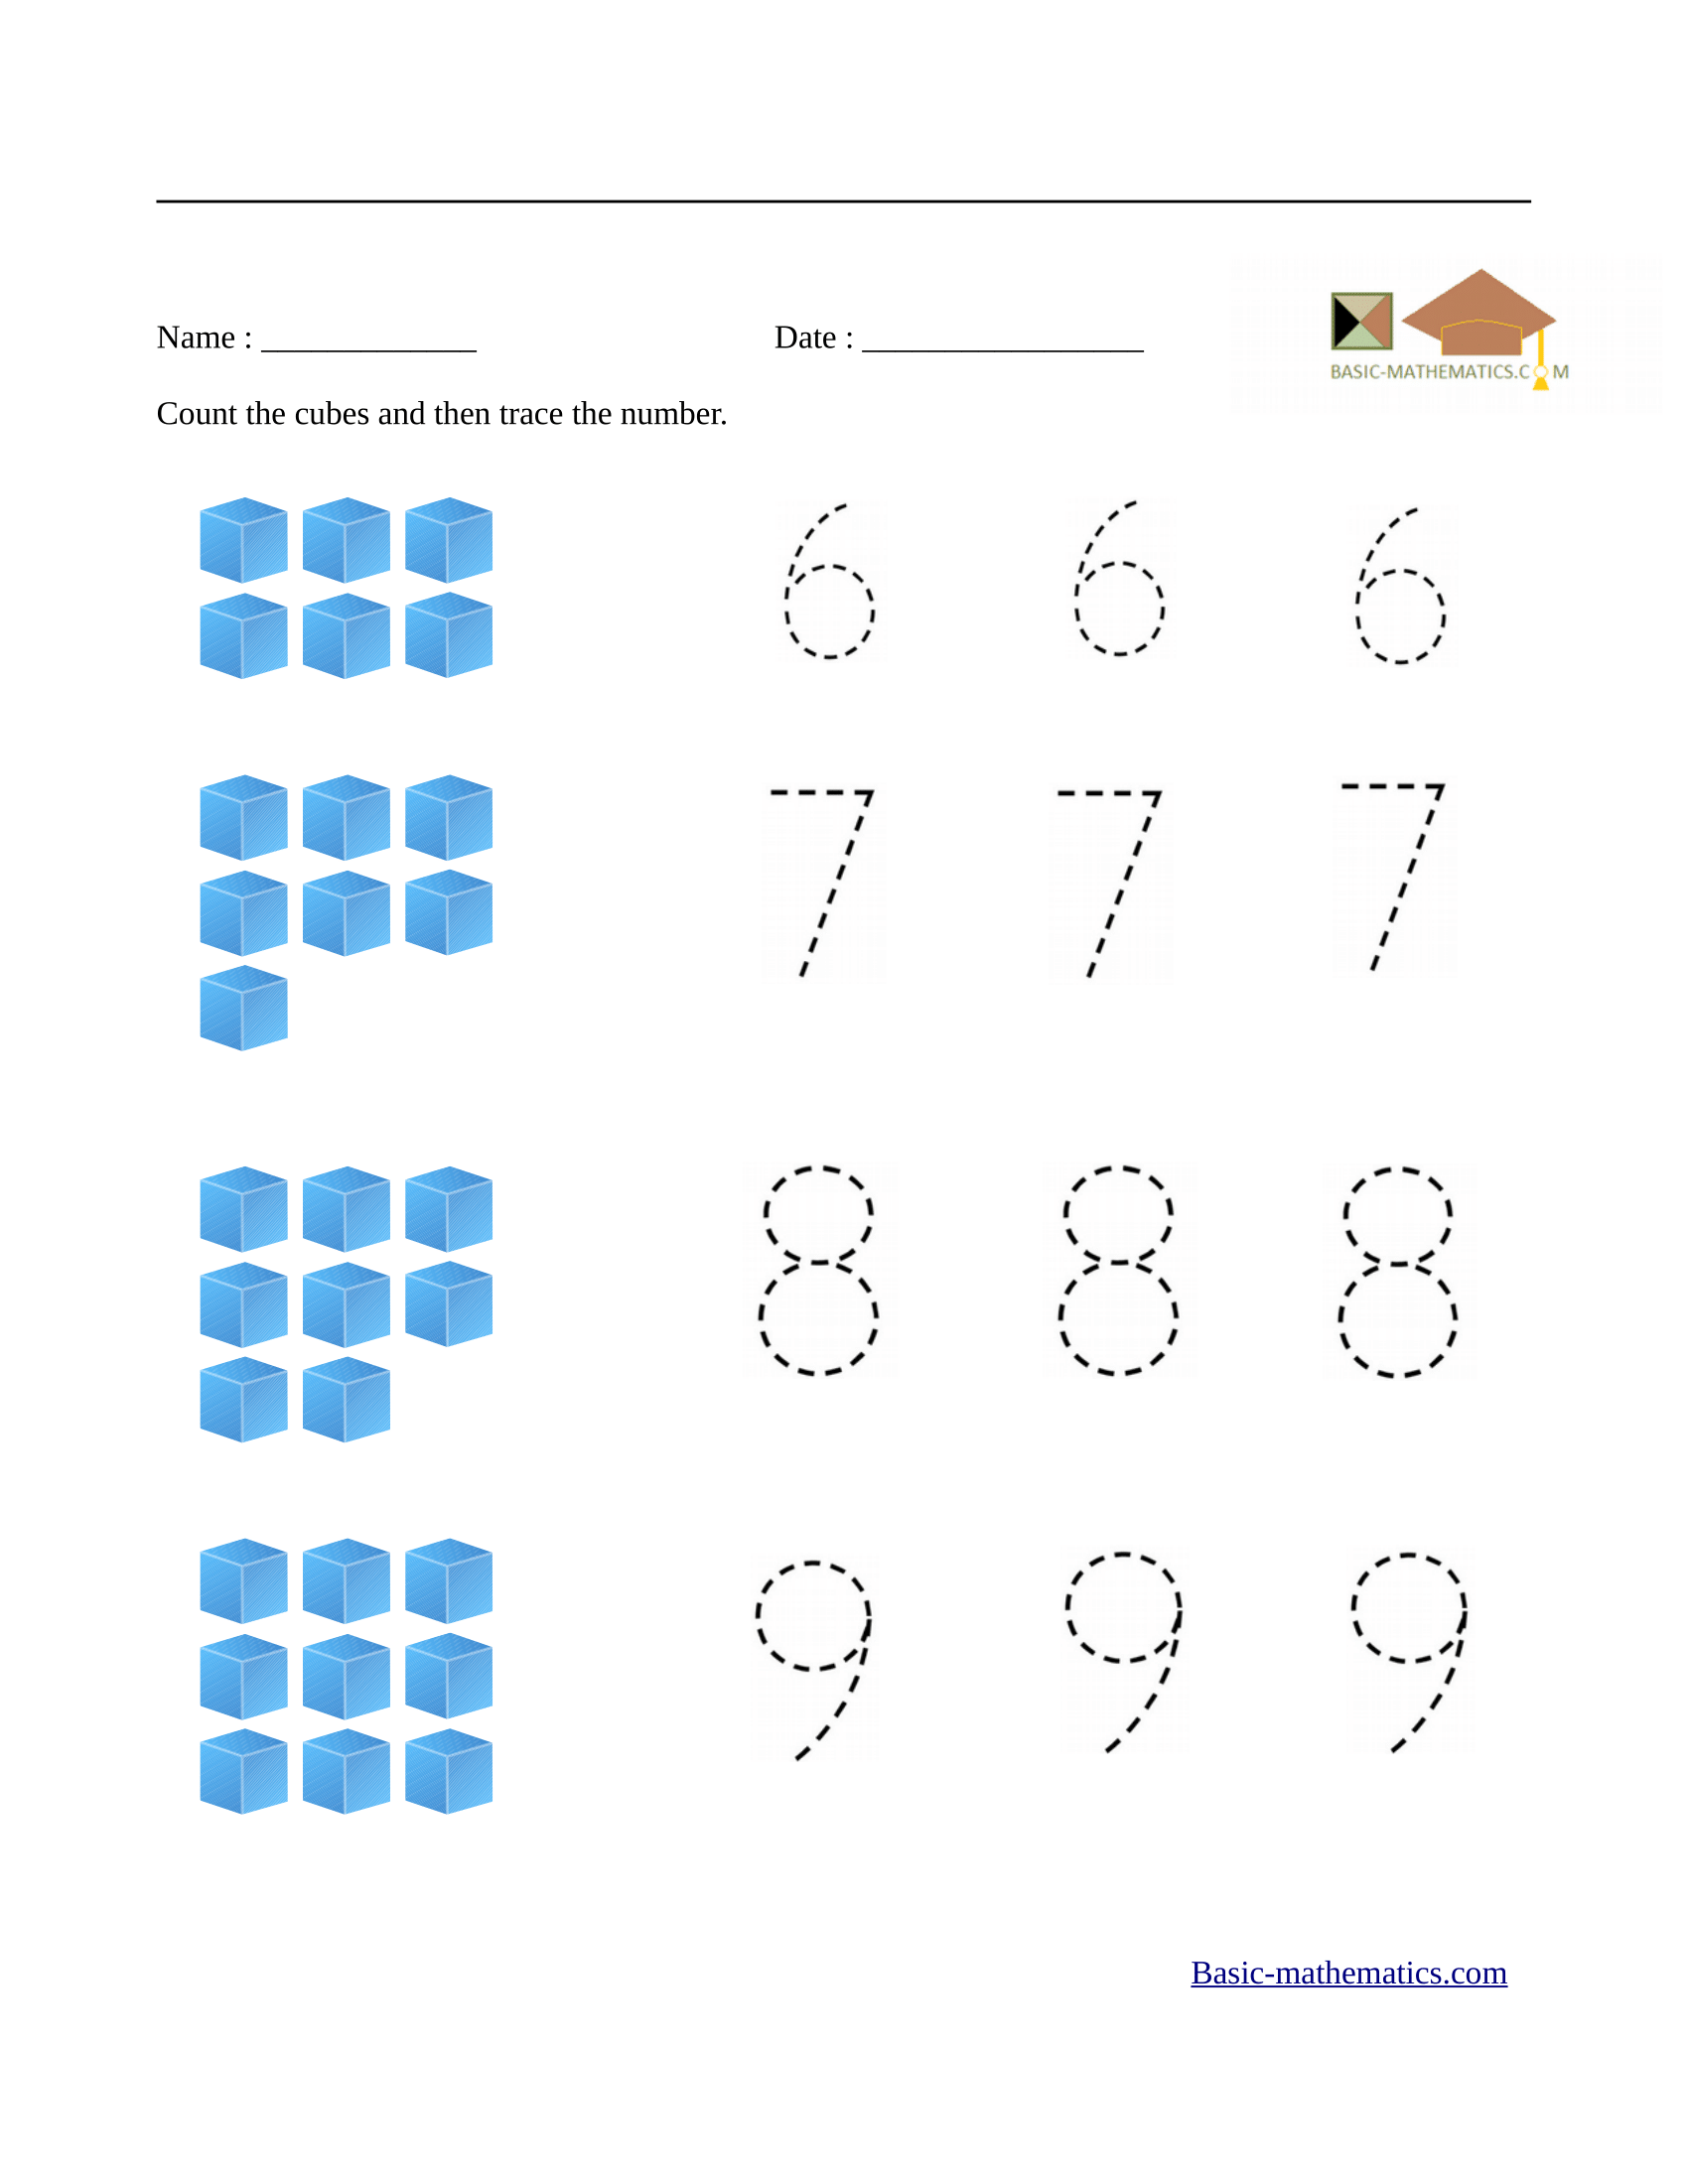 43 Simple Math Worksheets Design Ideas